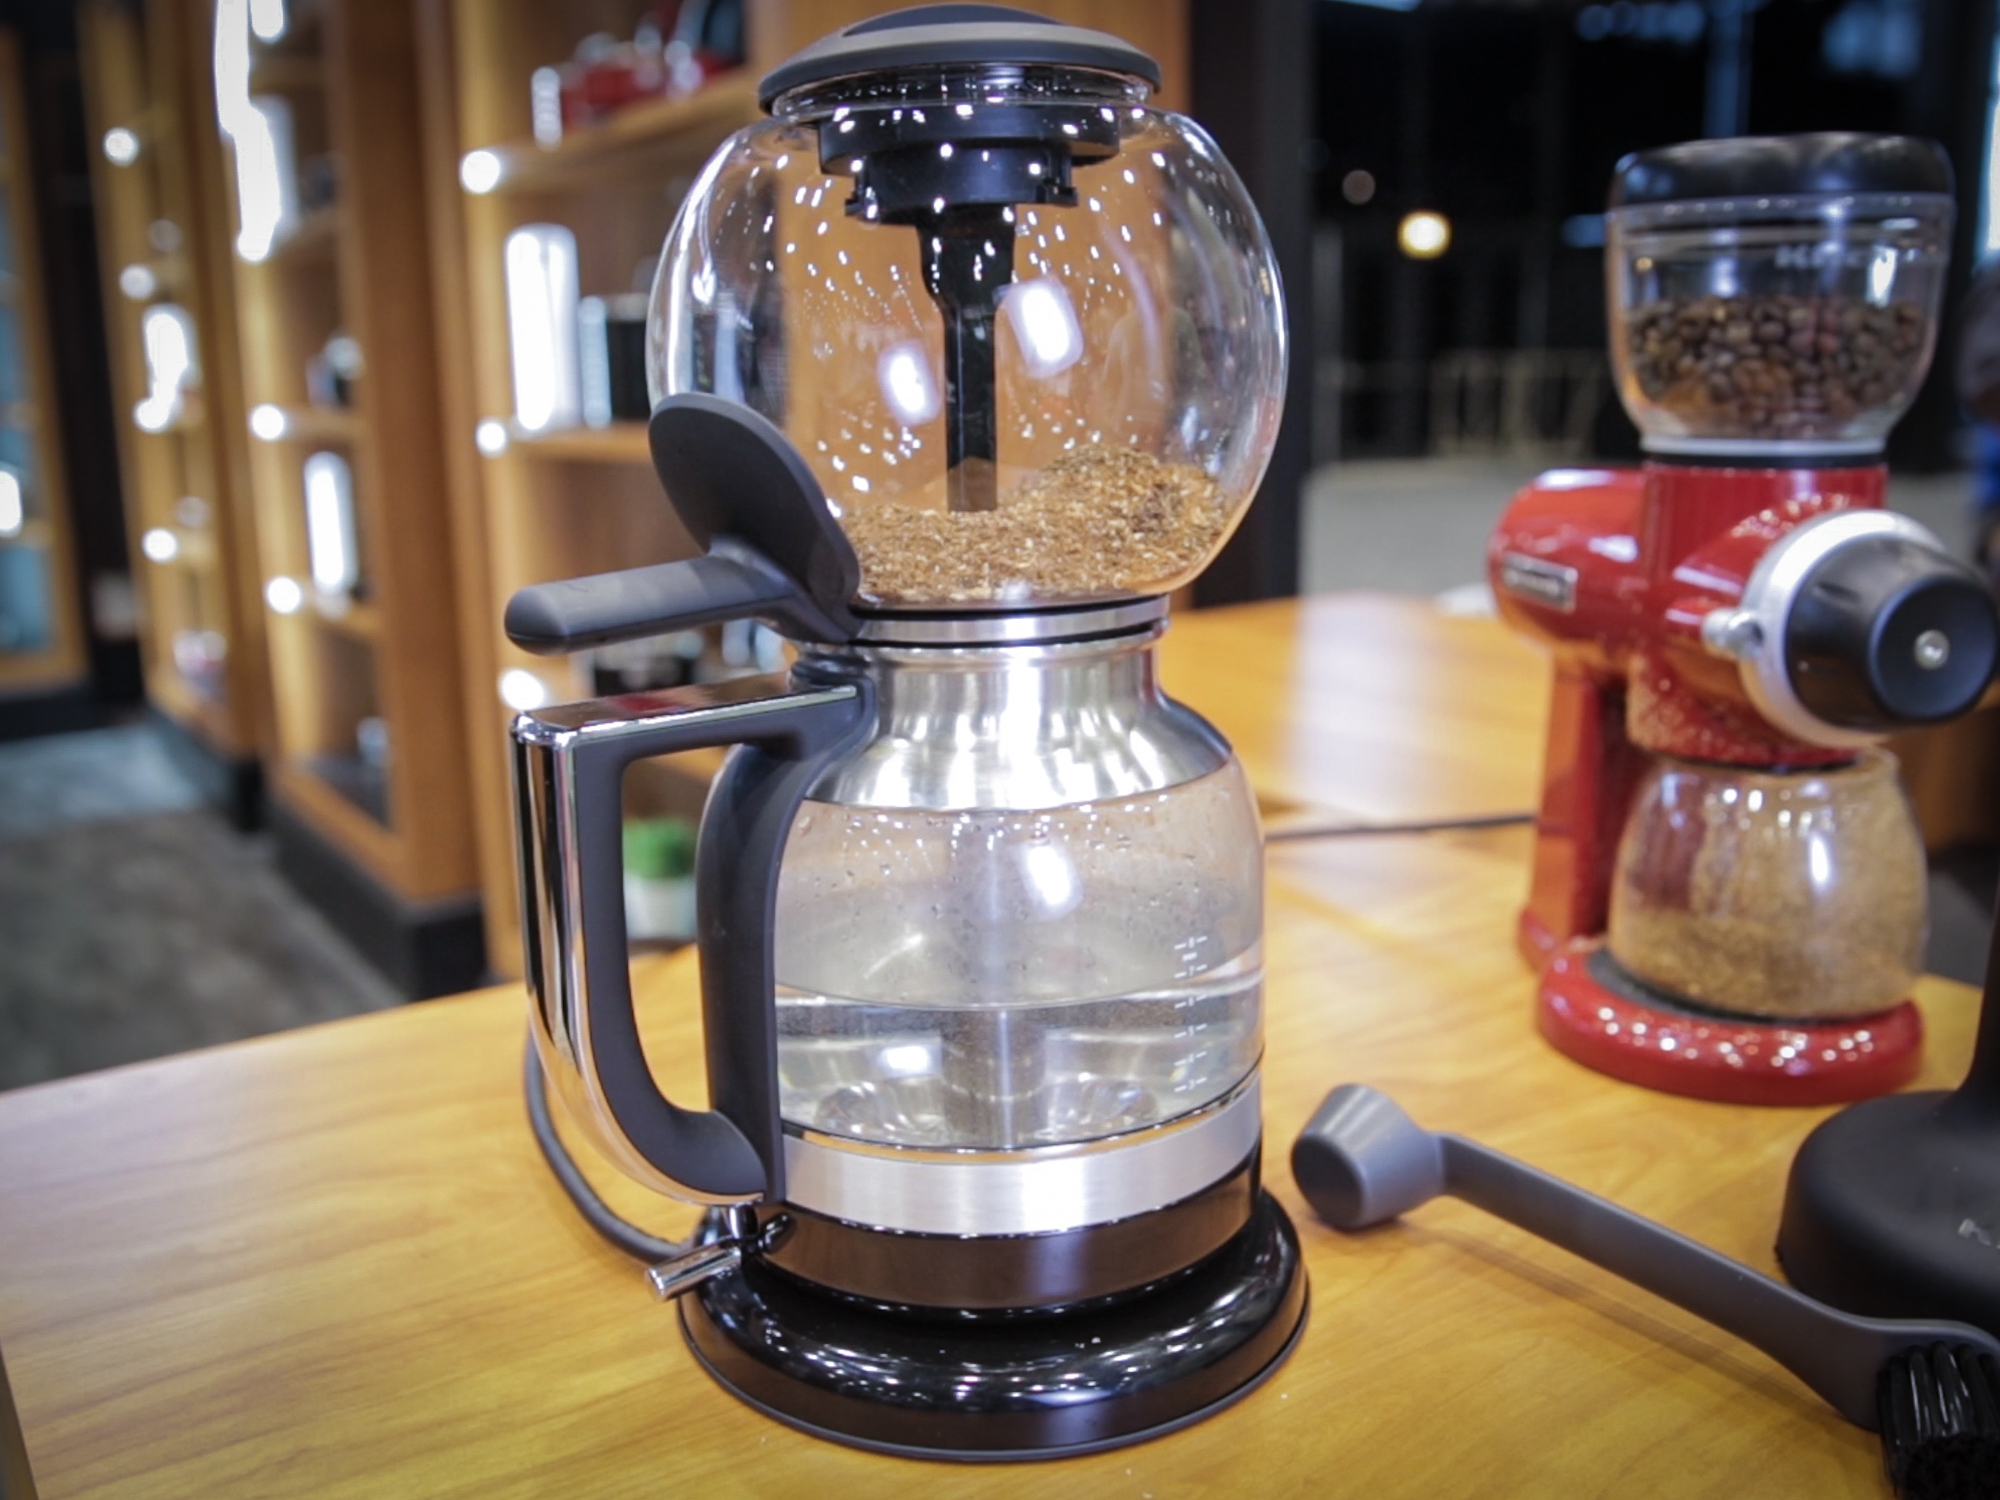 KitchenAid Siphon Brewer review - CNET